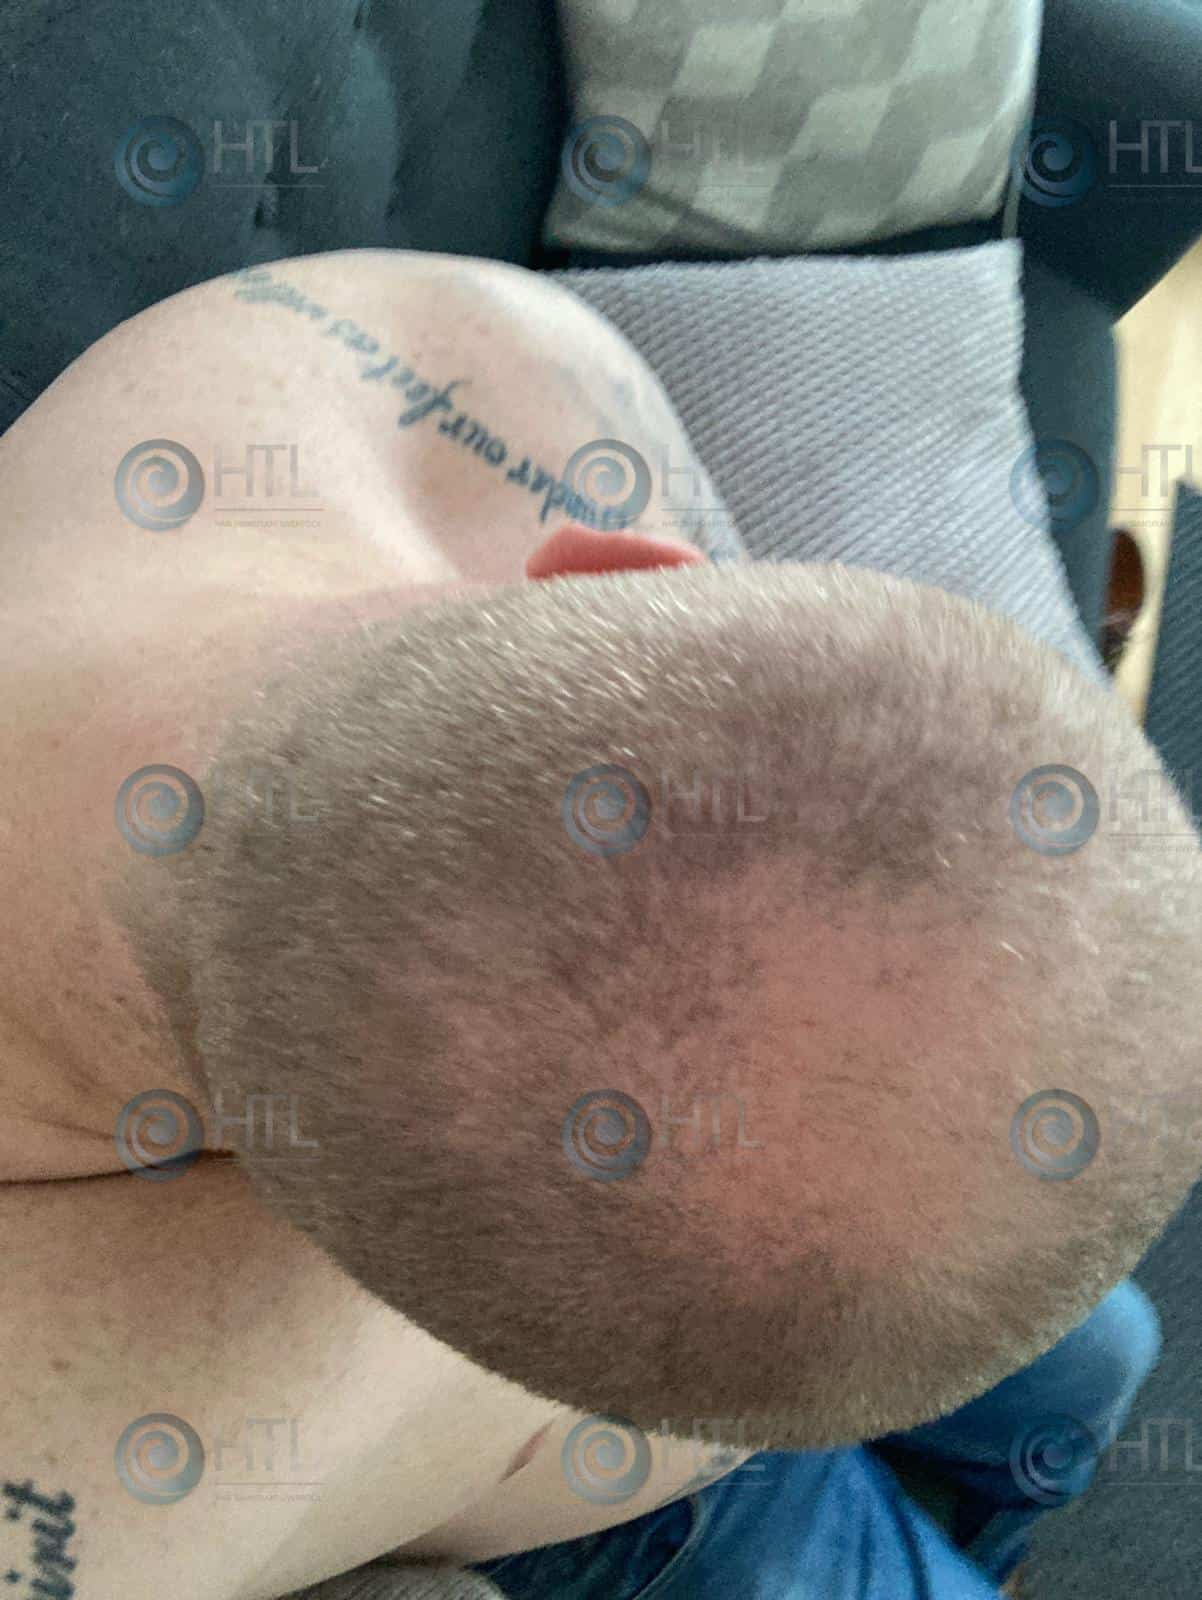 Hair-Transplant-Liverpool-Clinic-Client-before-surgery-hair-loss-on-crown